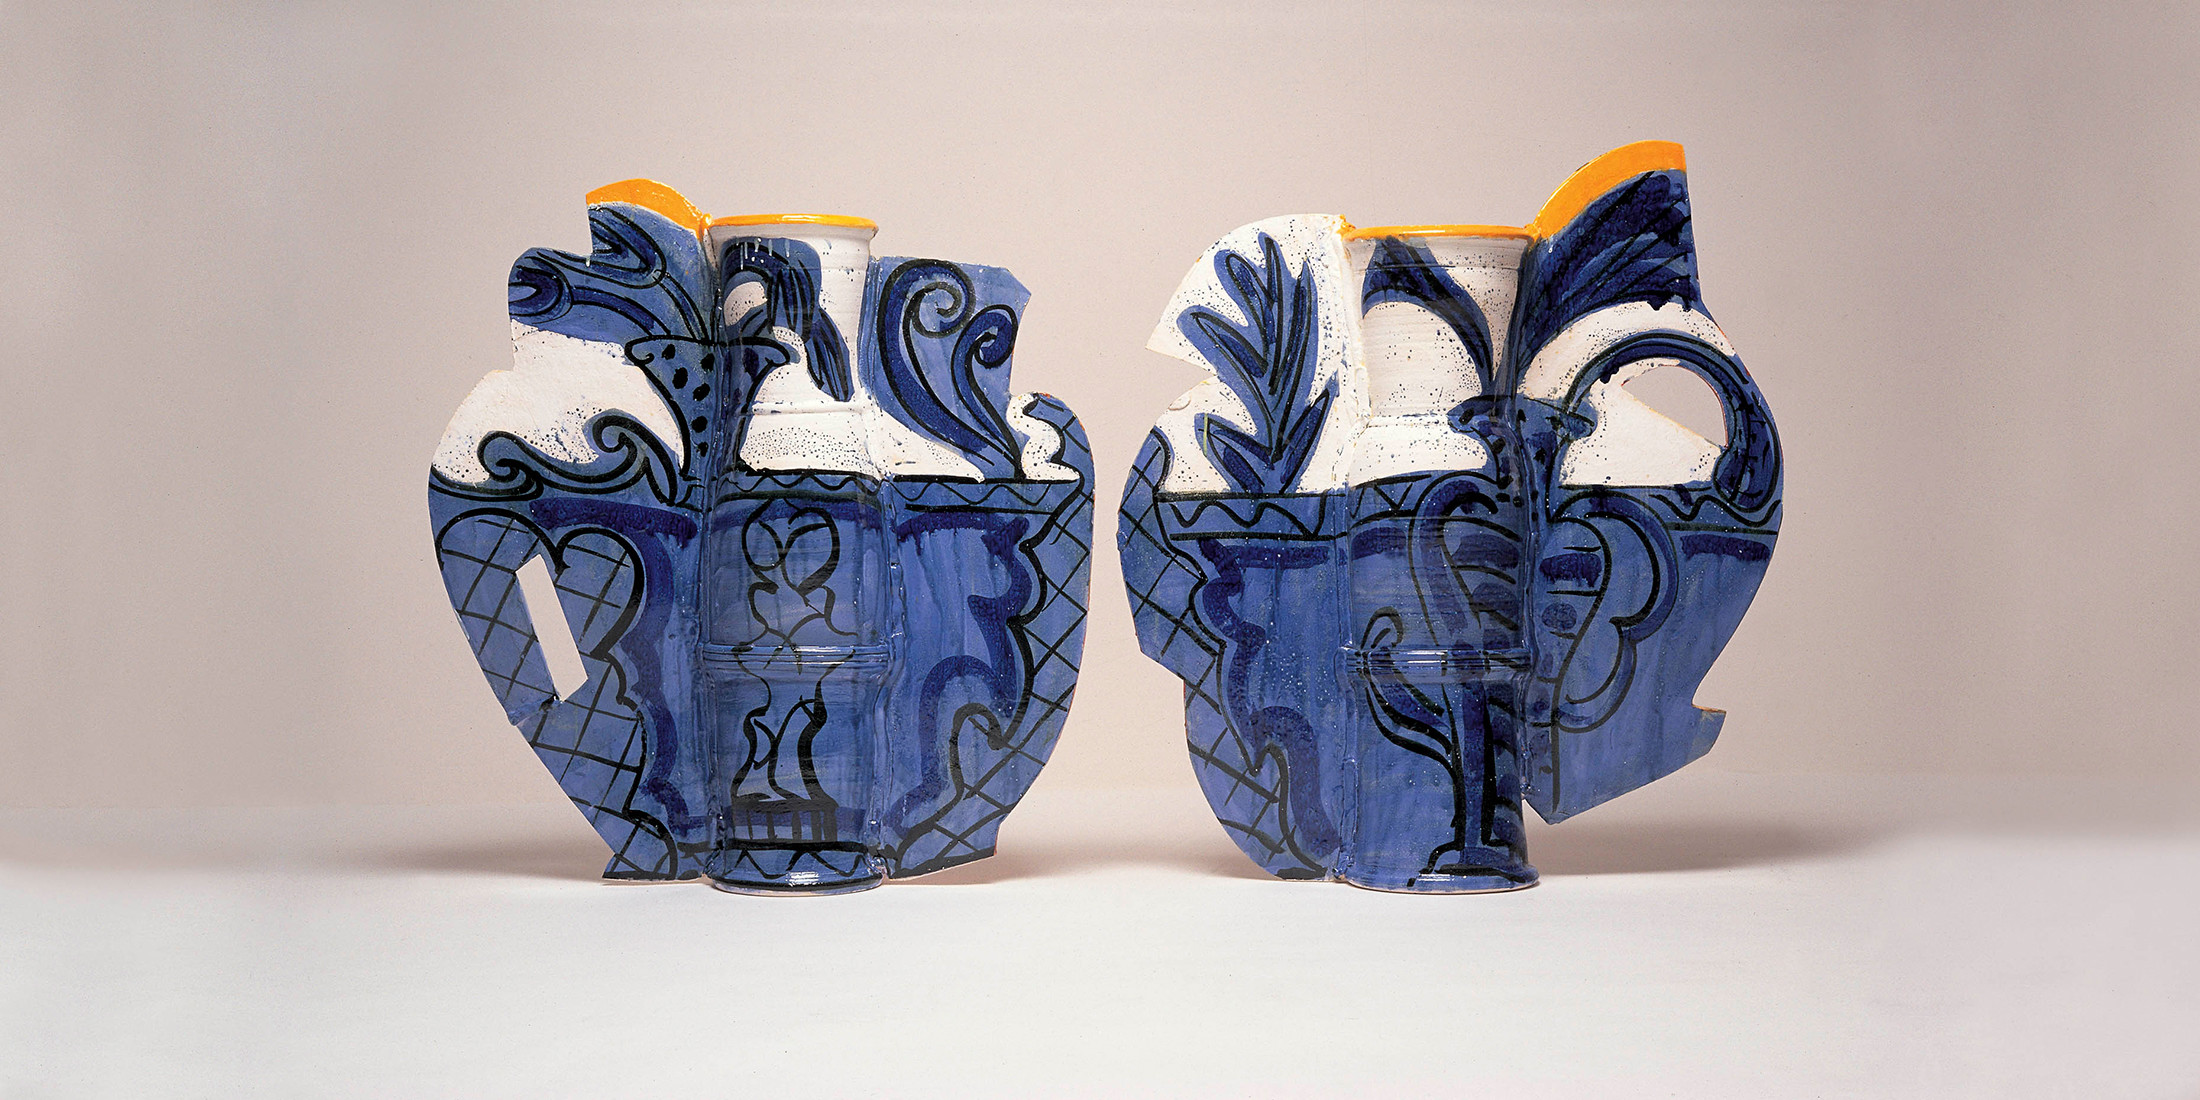 antique chinese vase appraisal of david kordansky gallery with the portugese in japan 2000 glazed earthenware epoxy resin lacquer paint 34 x 60 x 9 inches 86 4 x 152 4 x 22 9 cm